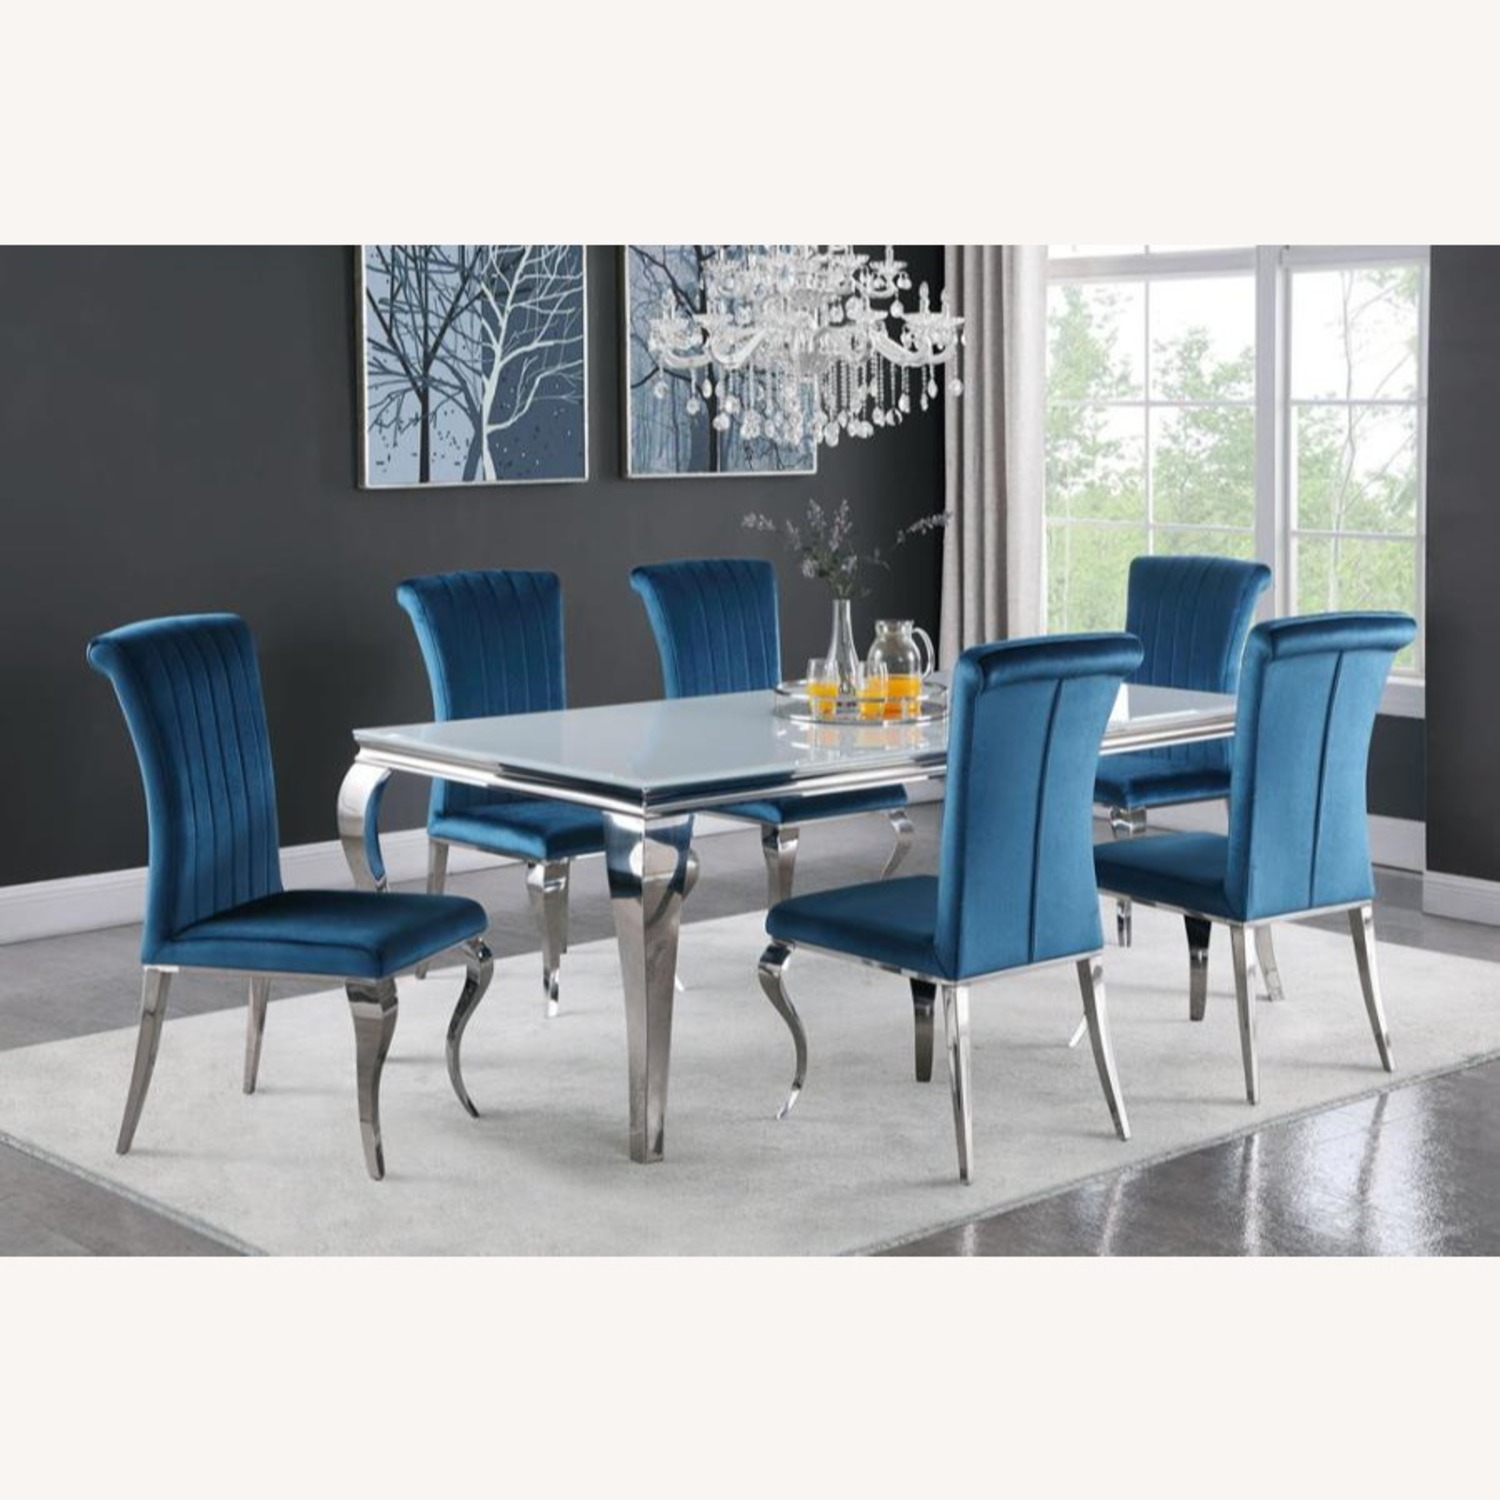 Dining Table In Chrome Base Finish W/ White Top - image-3